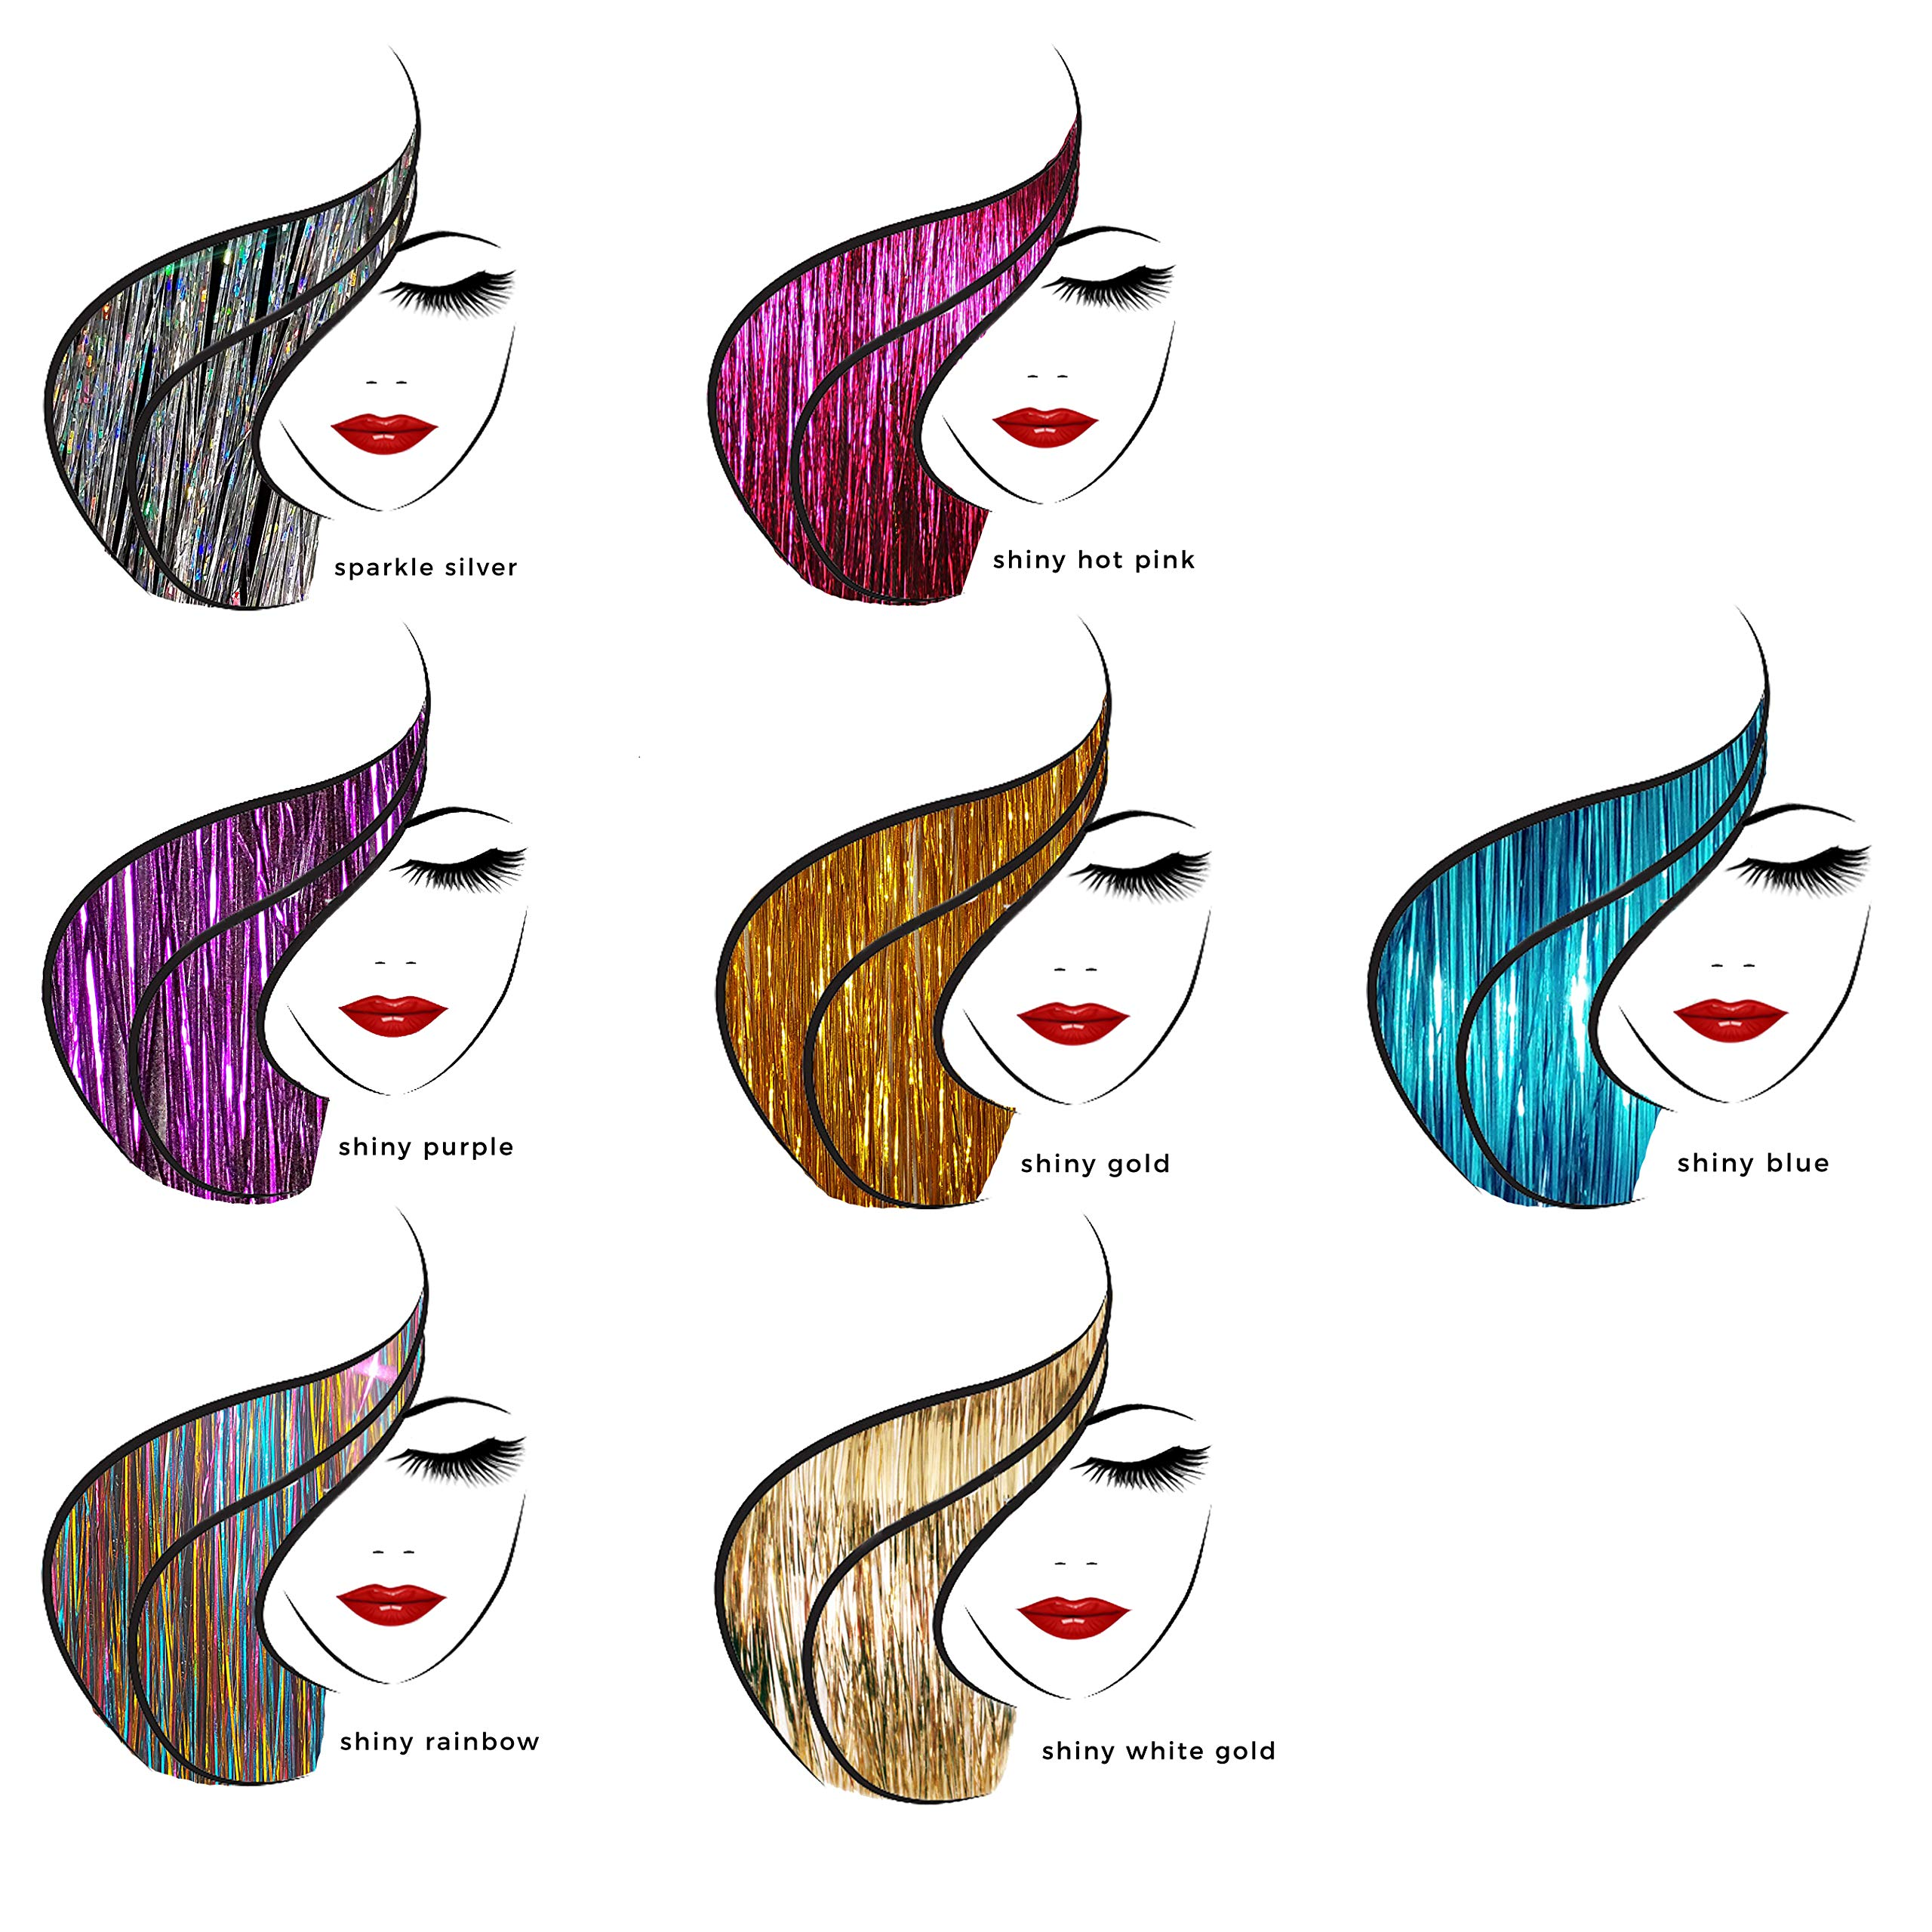 20'' Hair Tinsel 175 Strands Seven Colors (Sparkling Silver, Purple, Rainbow, Hot Pink, Gold, White Gold, Blue) With Bonus by La Demoiselle (Image #3)